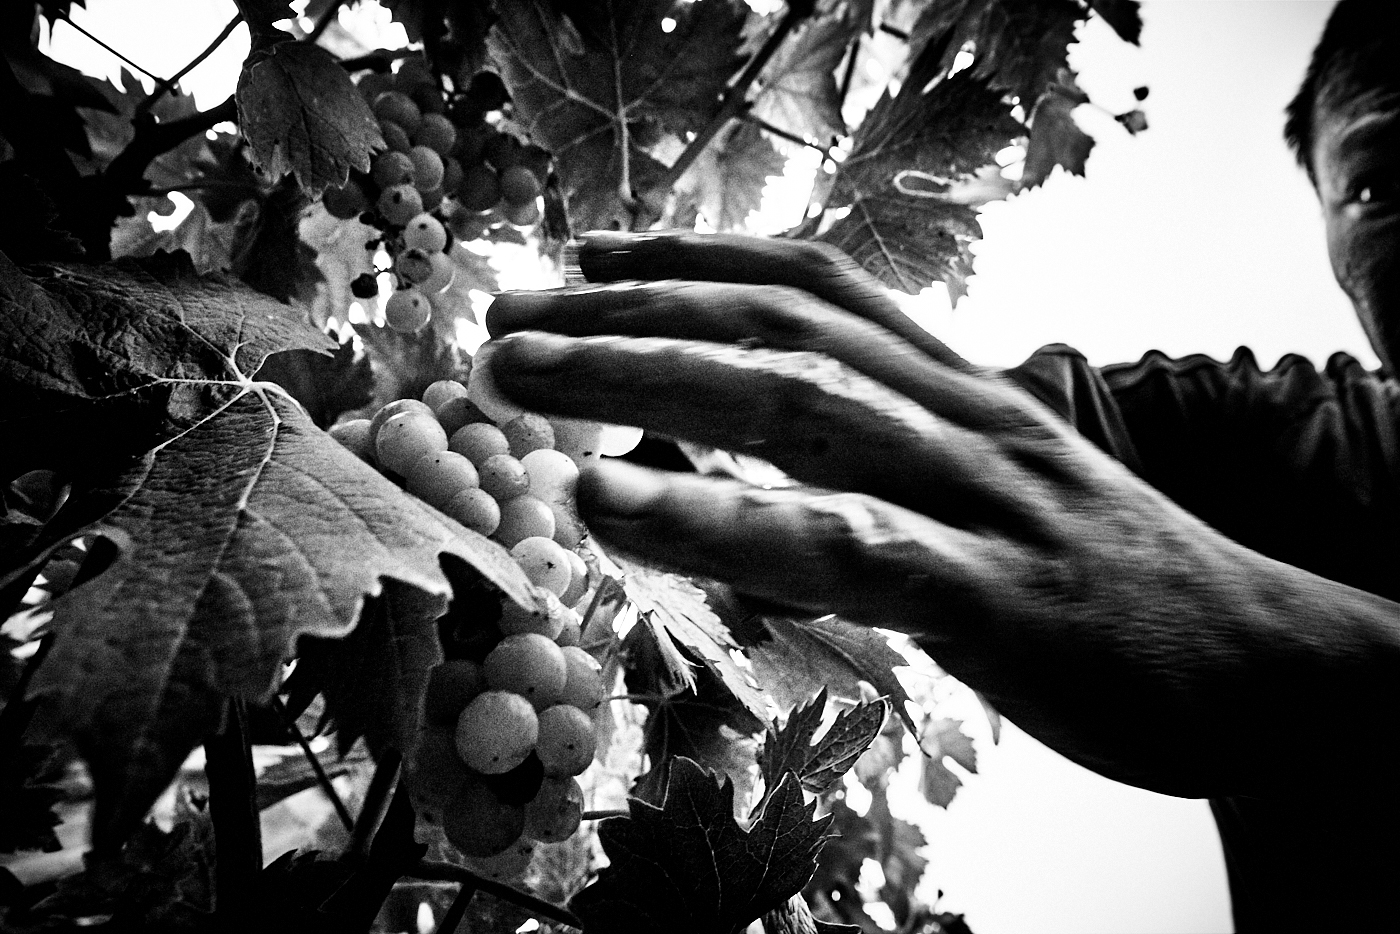 Alessandro Puccinelli's Photographic Celebration of The Harvest